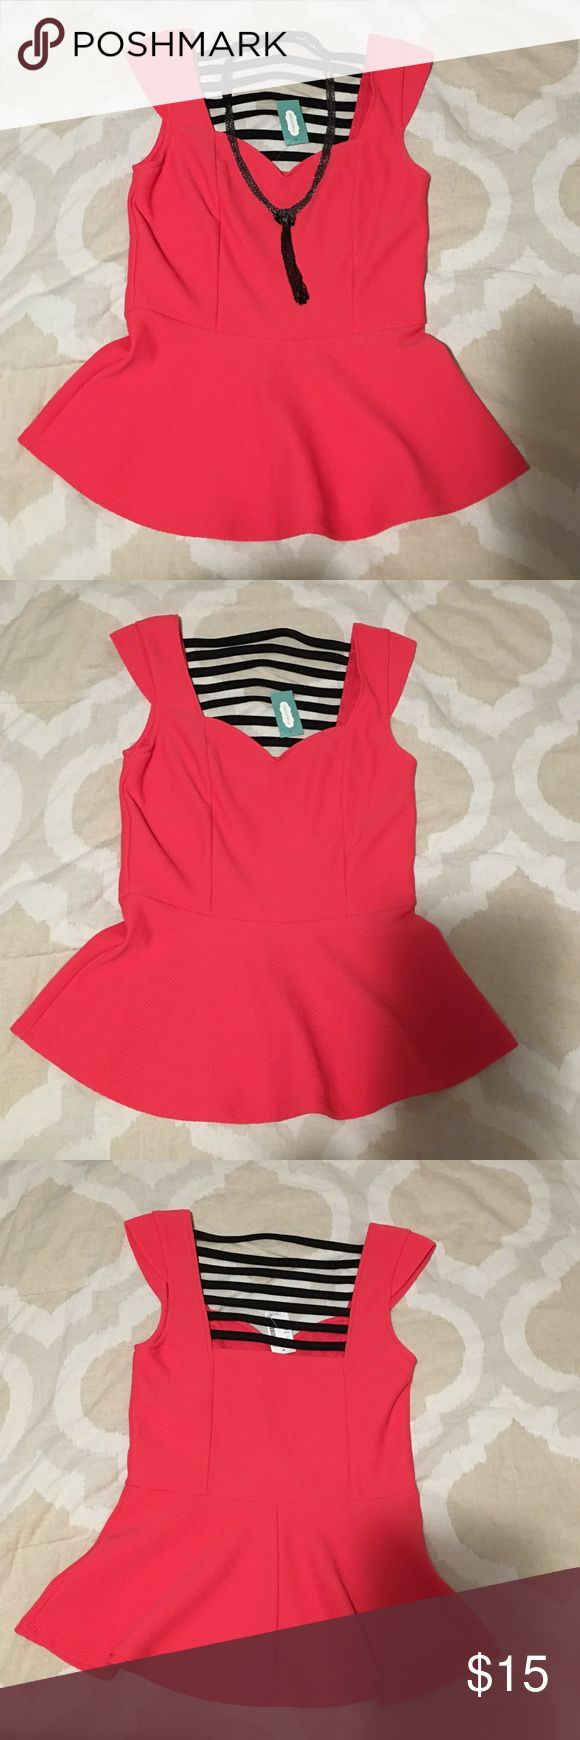 NWT Hot pink peplum top Hot pink peplum top with a sweetheart neckline and strappy detail on the back. This flirty top is just the right style for date night  Maurices Tops